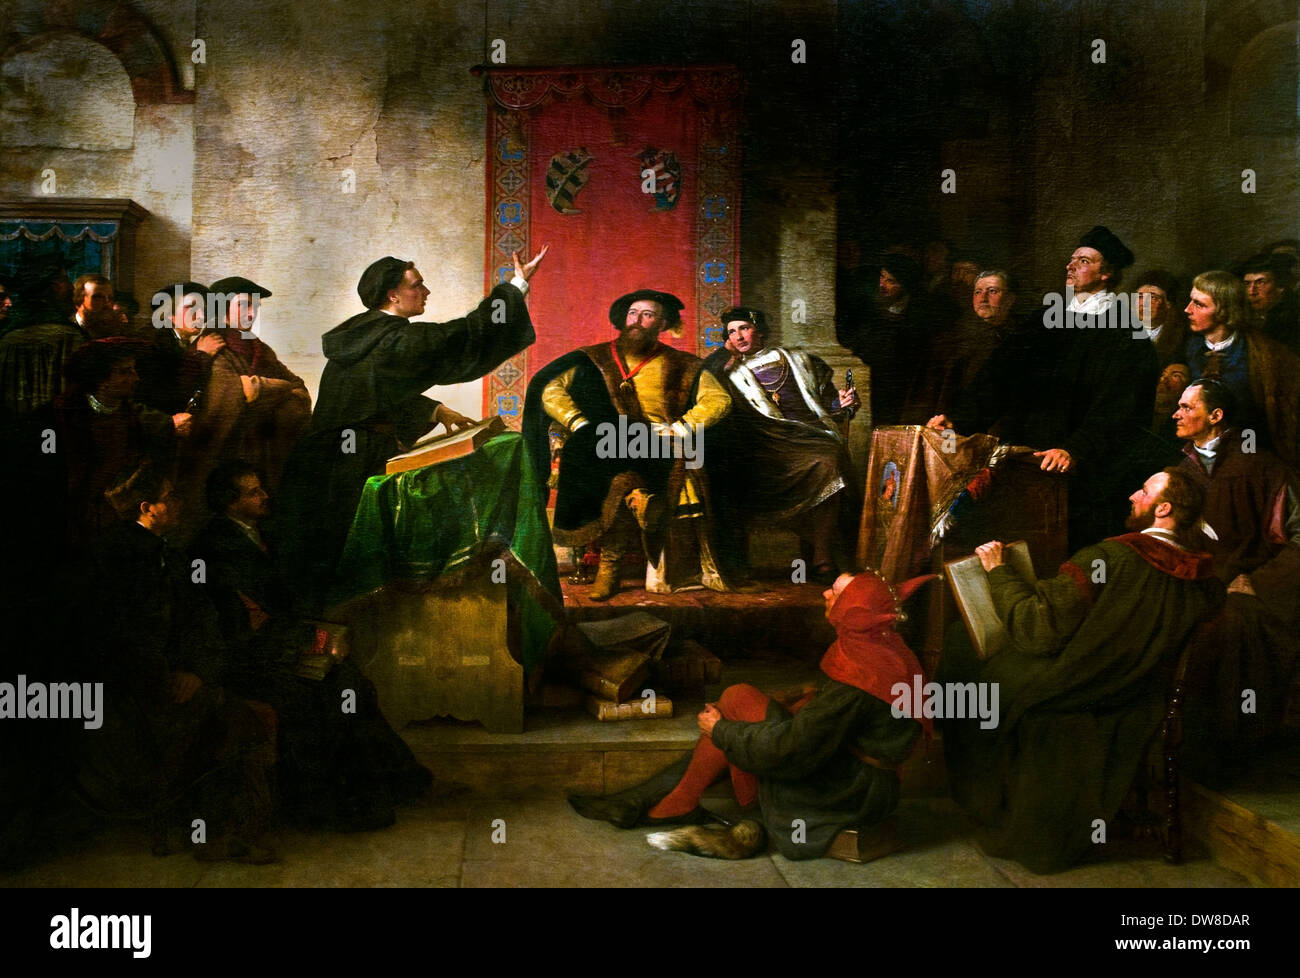 Disputation between Luther and Eck 1867 Carl Friedrich Lessing 1808 - 1880 Martin Luther 1483 – 1546 Protestant German Germany - Stock Image